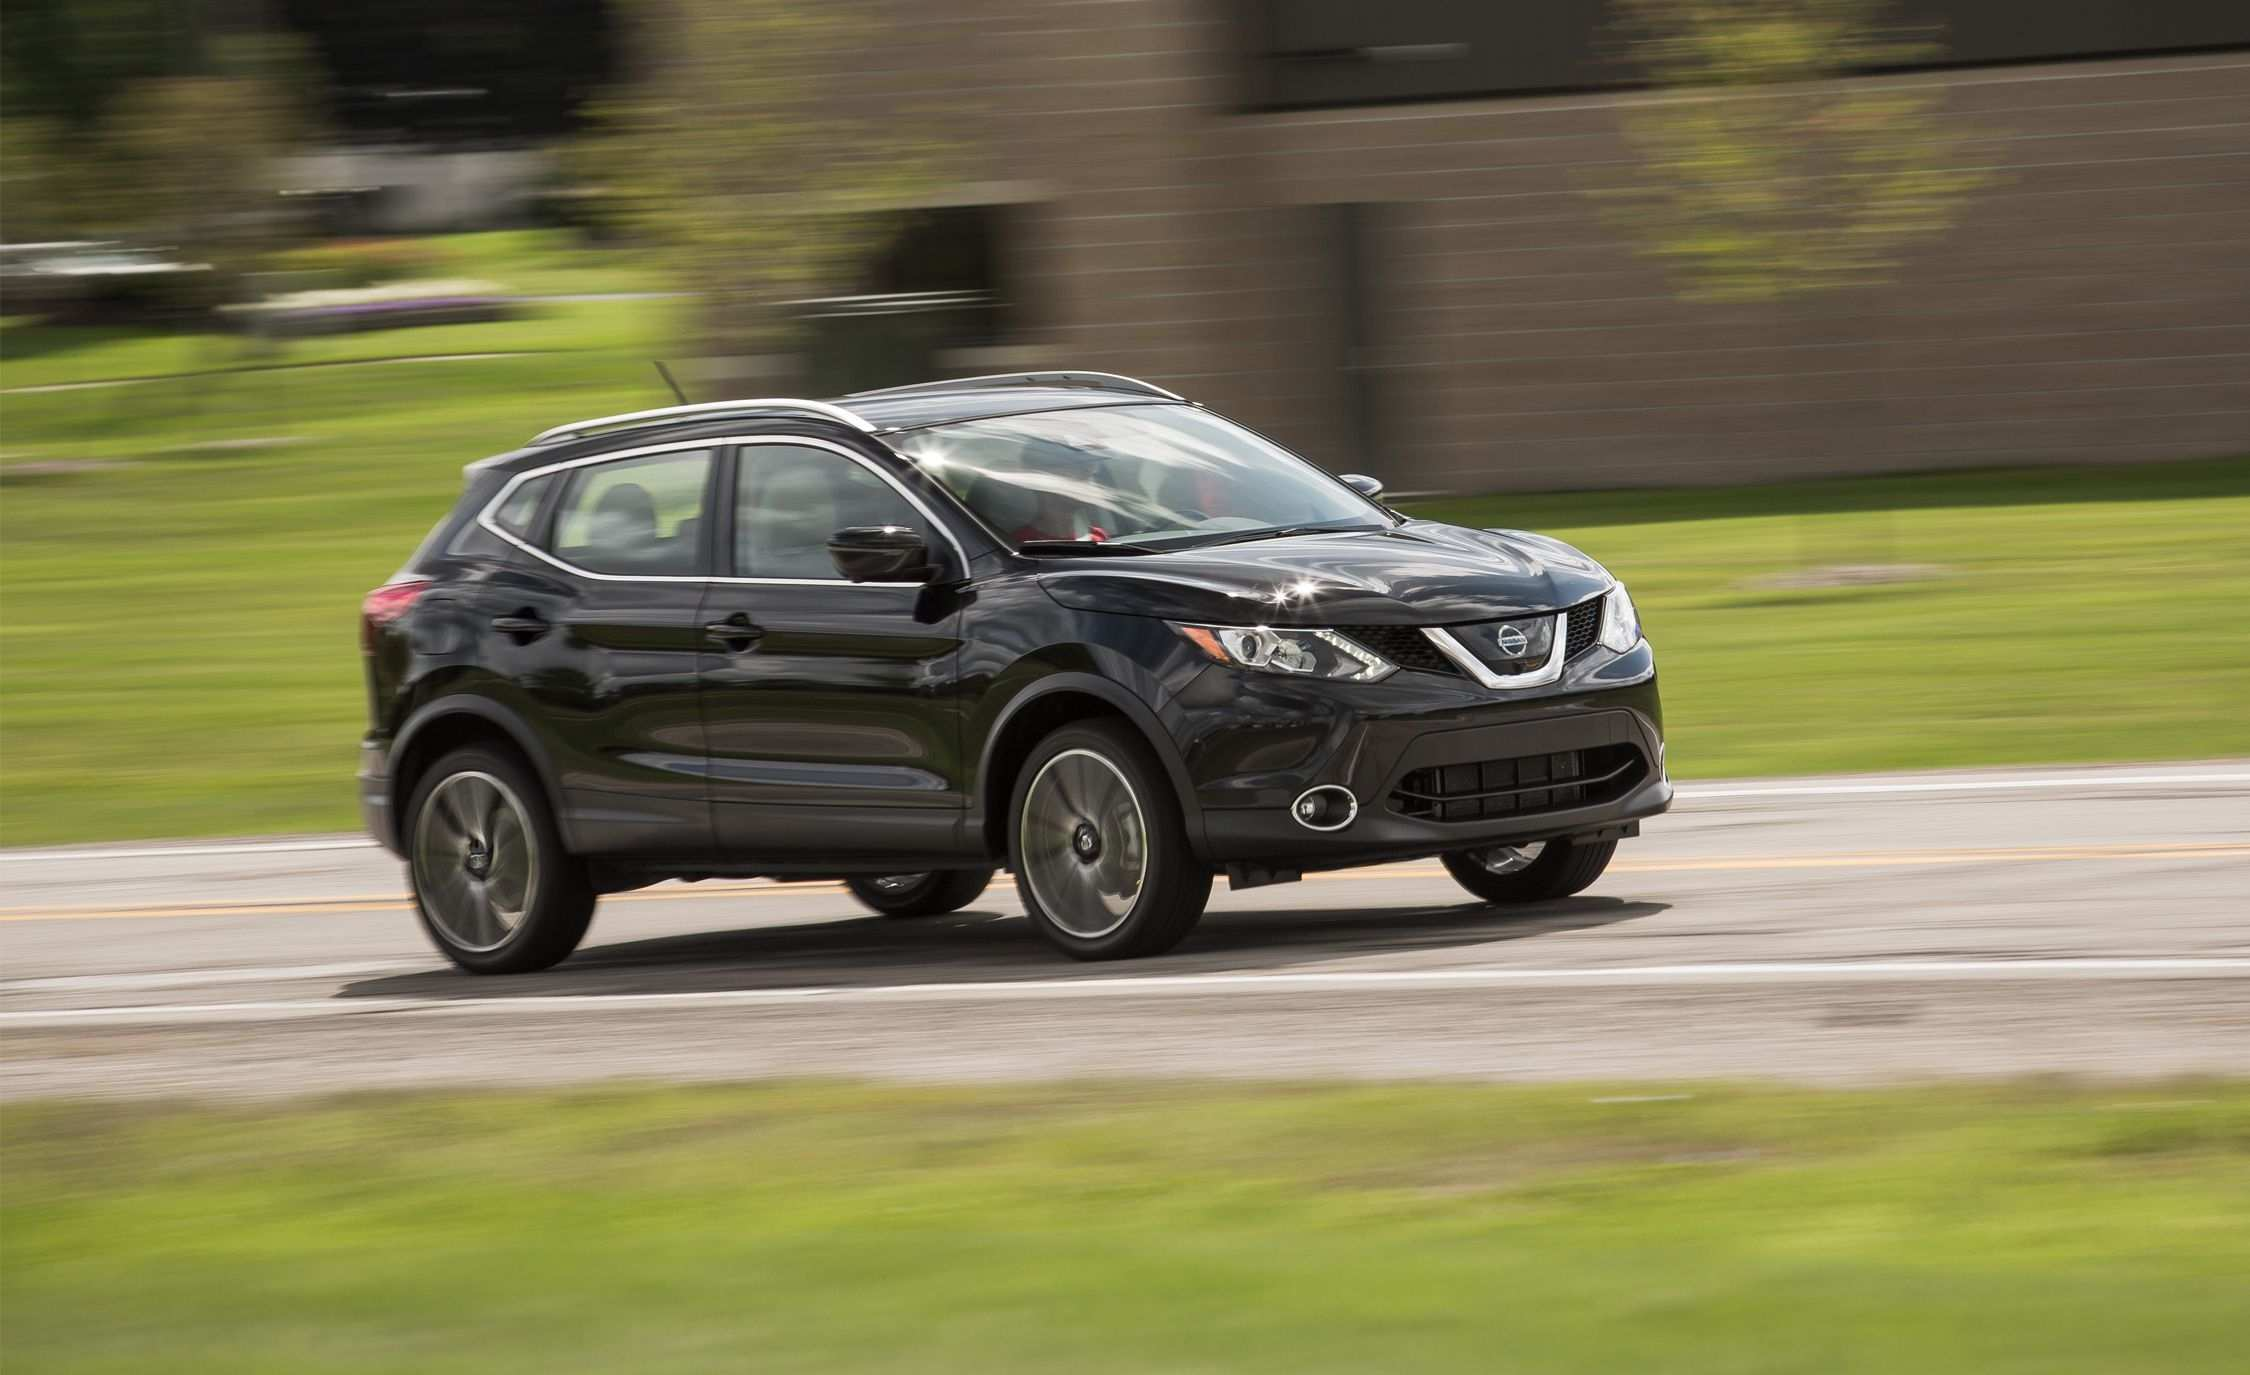 47 The Best 2020 Nissan Rogue Exterior